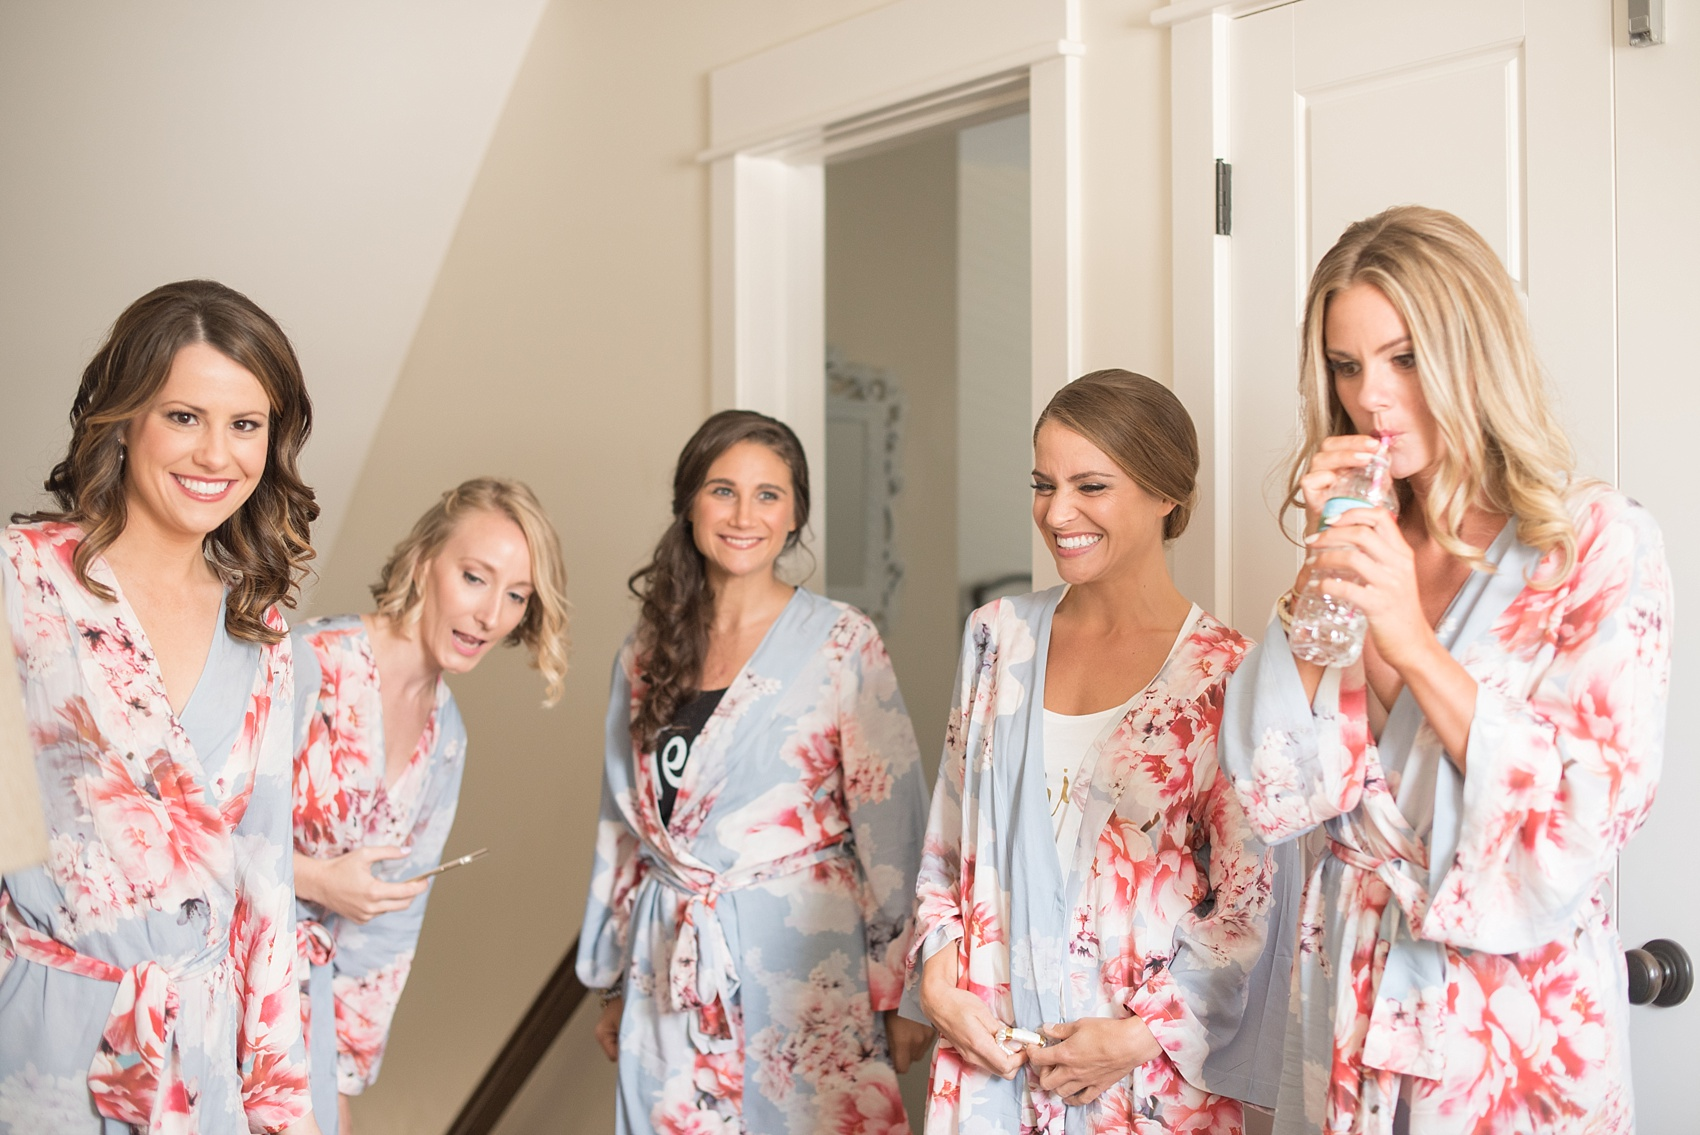 Mikkel Paige Photography photos from a Bay Head Yacht Club wedding in NJ. The bride and her bridesmaids got ready in blue and peach floral robes.